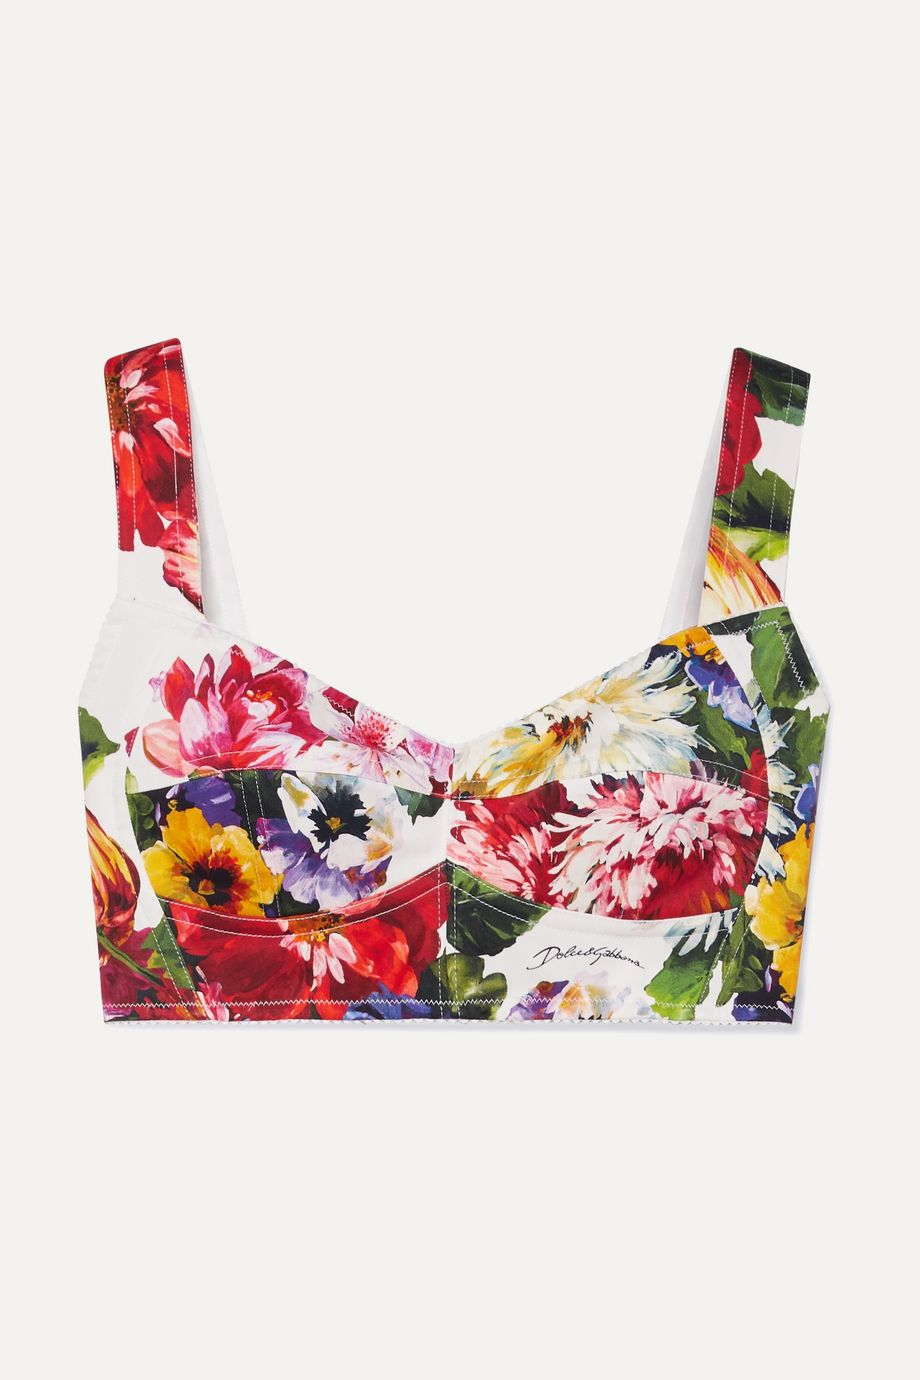 Dolce & Gabbana Floral-print cotton-blend twill bra top